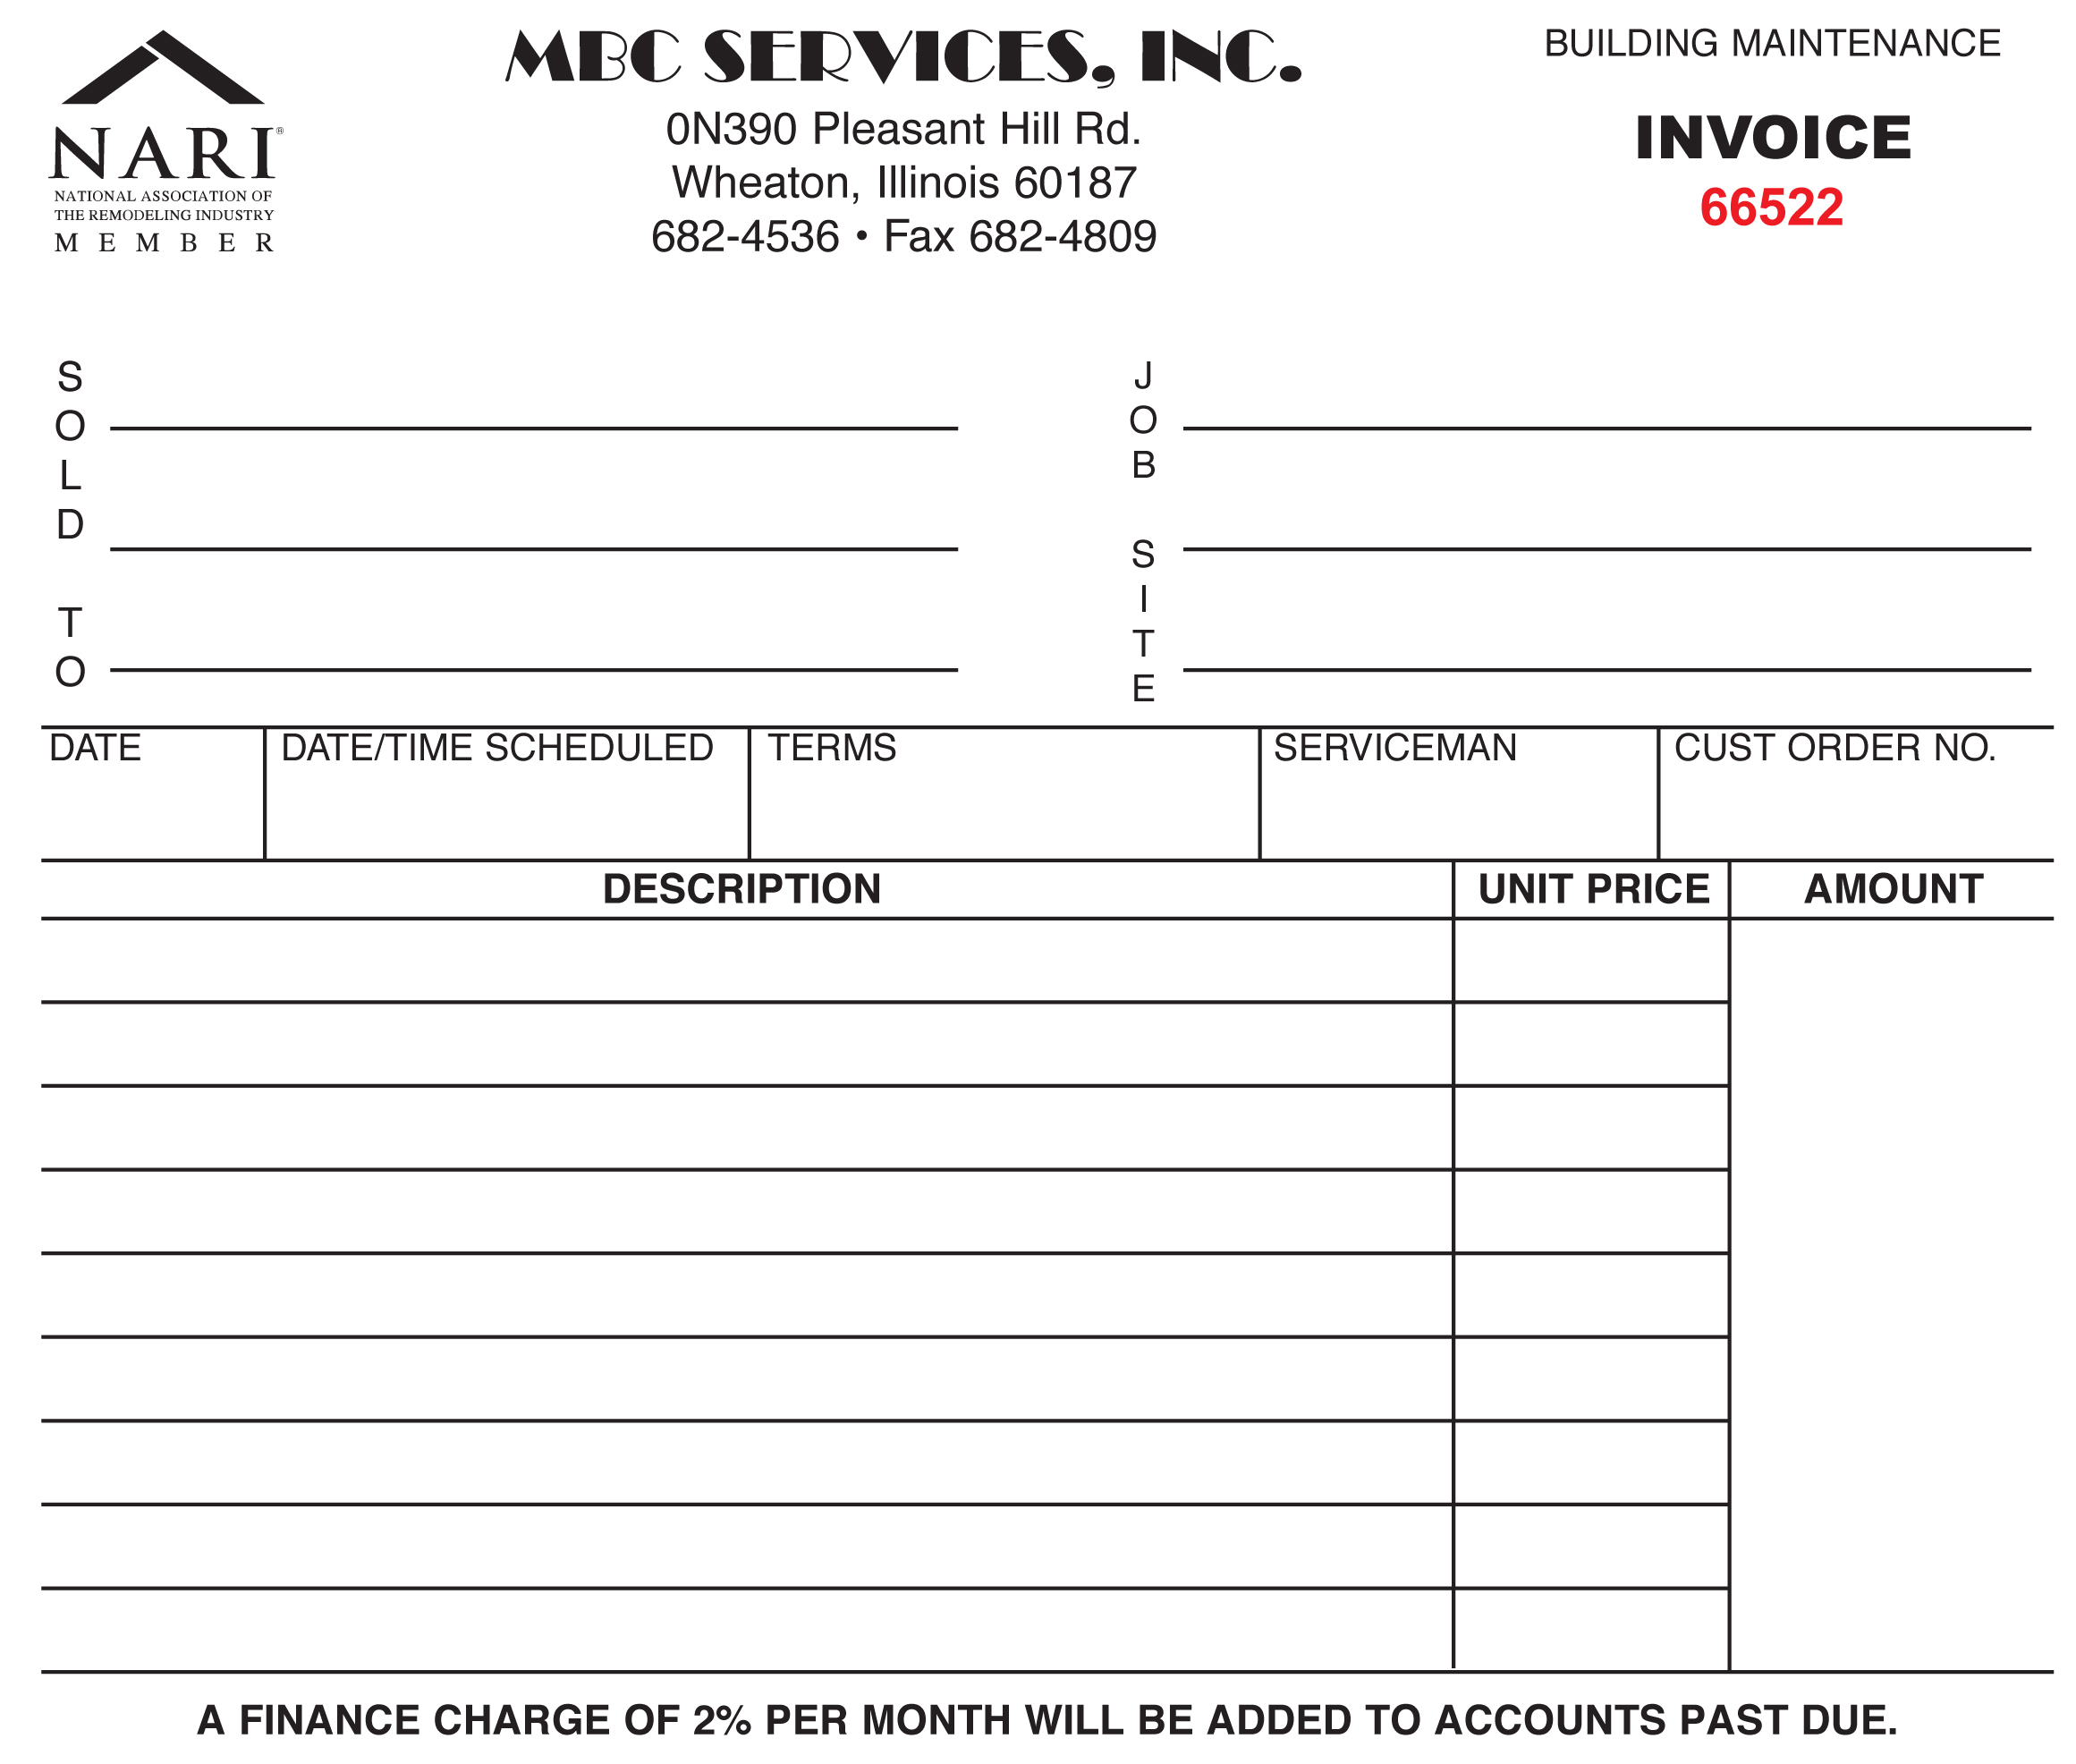 Invoice Form Printing Dream Ink Powerful Print Promotional And - How to print invoice